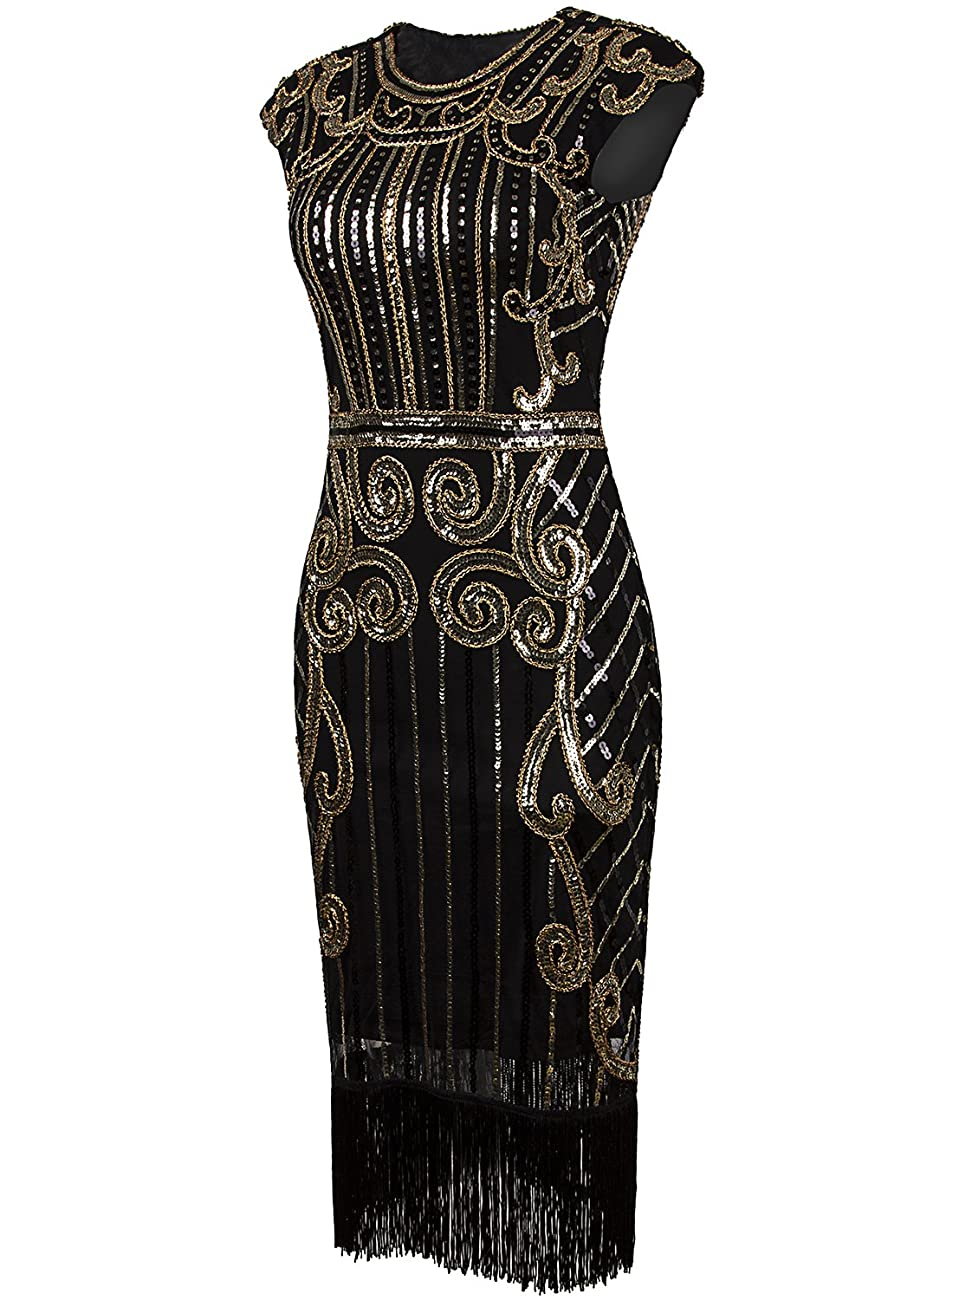 Vijiv 1920s Vintage Inspired Sequin Embellished Fringe Long Gatsby Flapper Dress 2